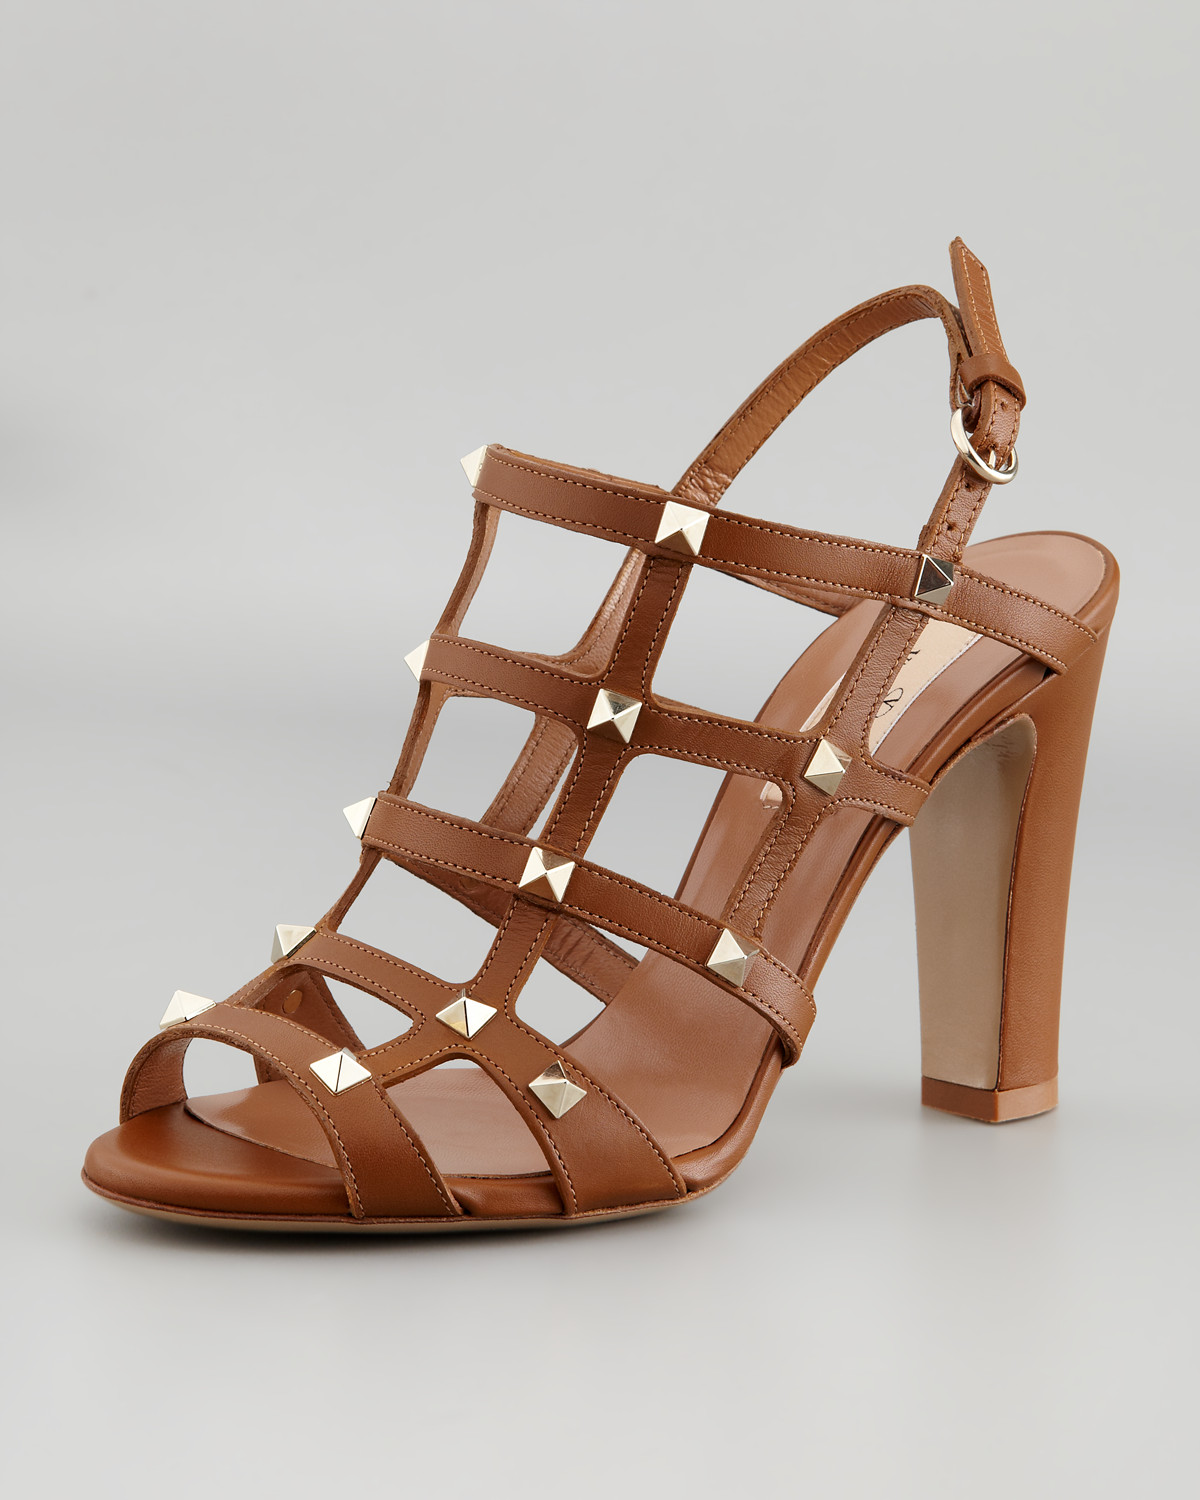 Valentino Suede Cage Sandals footlocker pictures for sale sale Manchester great deals cheap online sale under $60 NxBRku